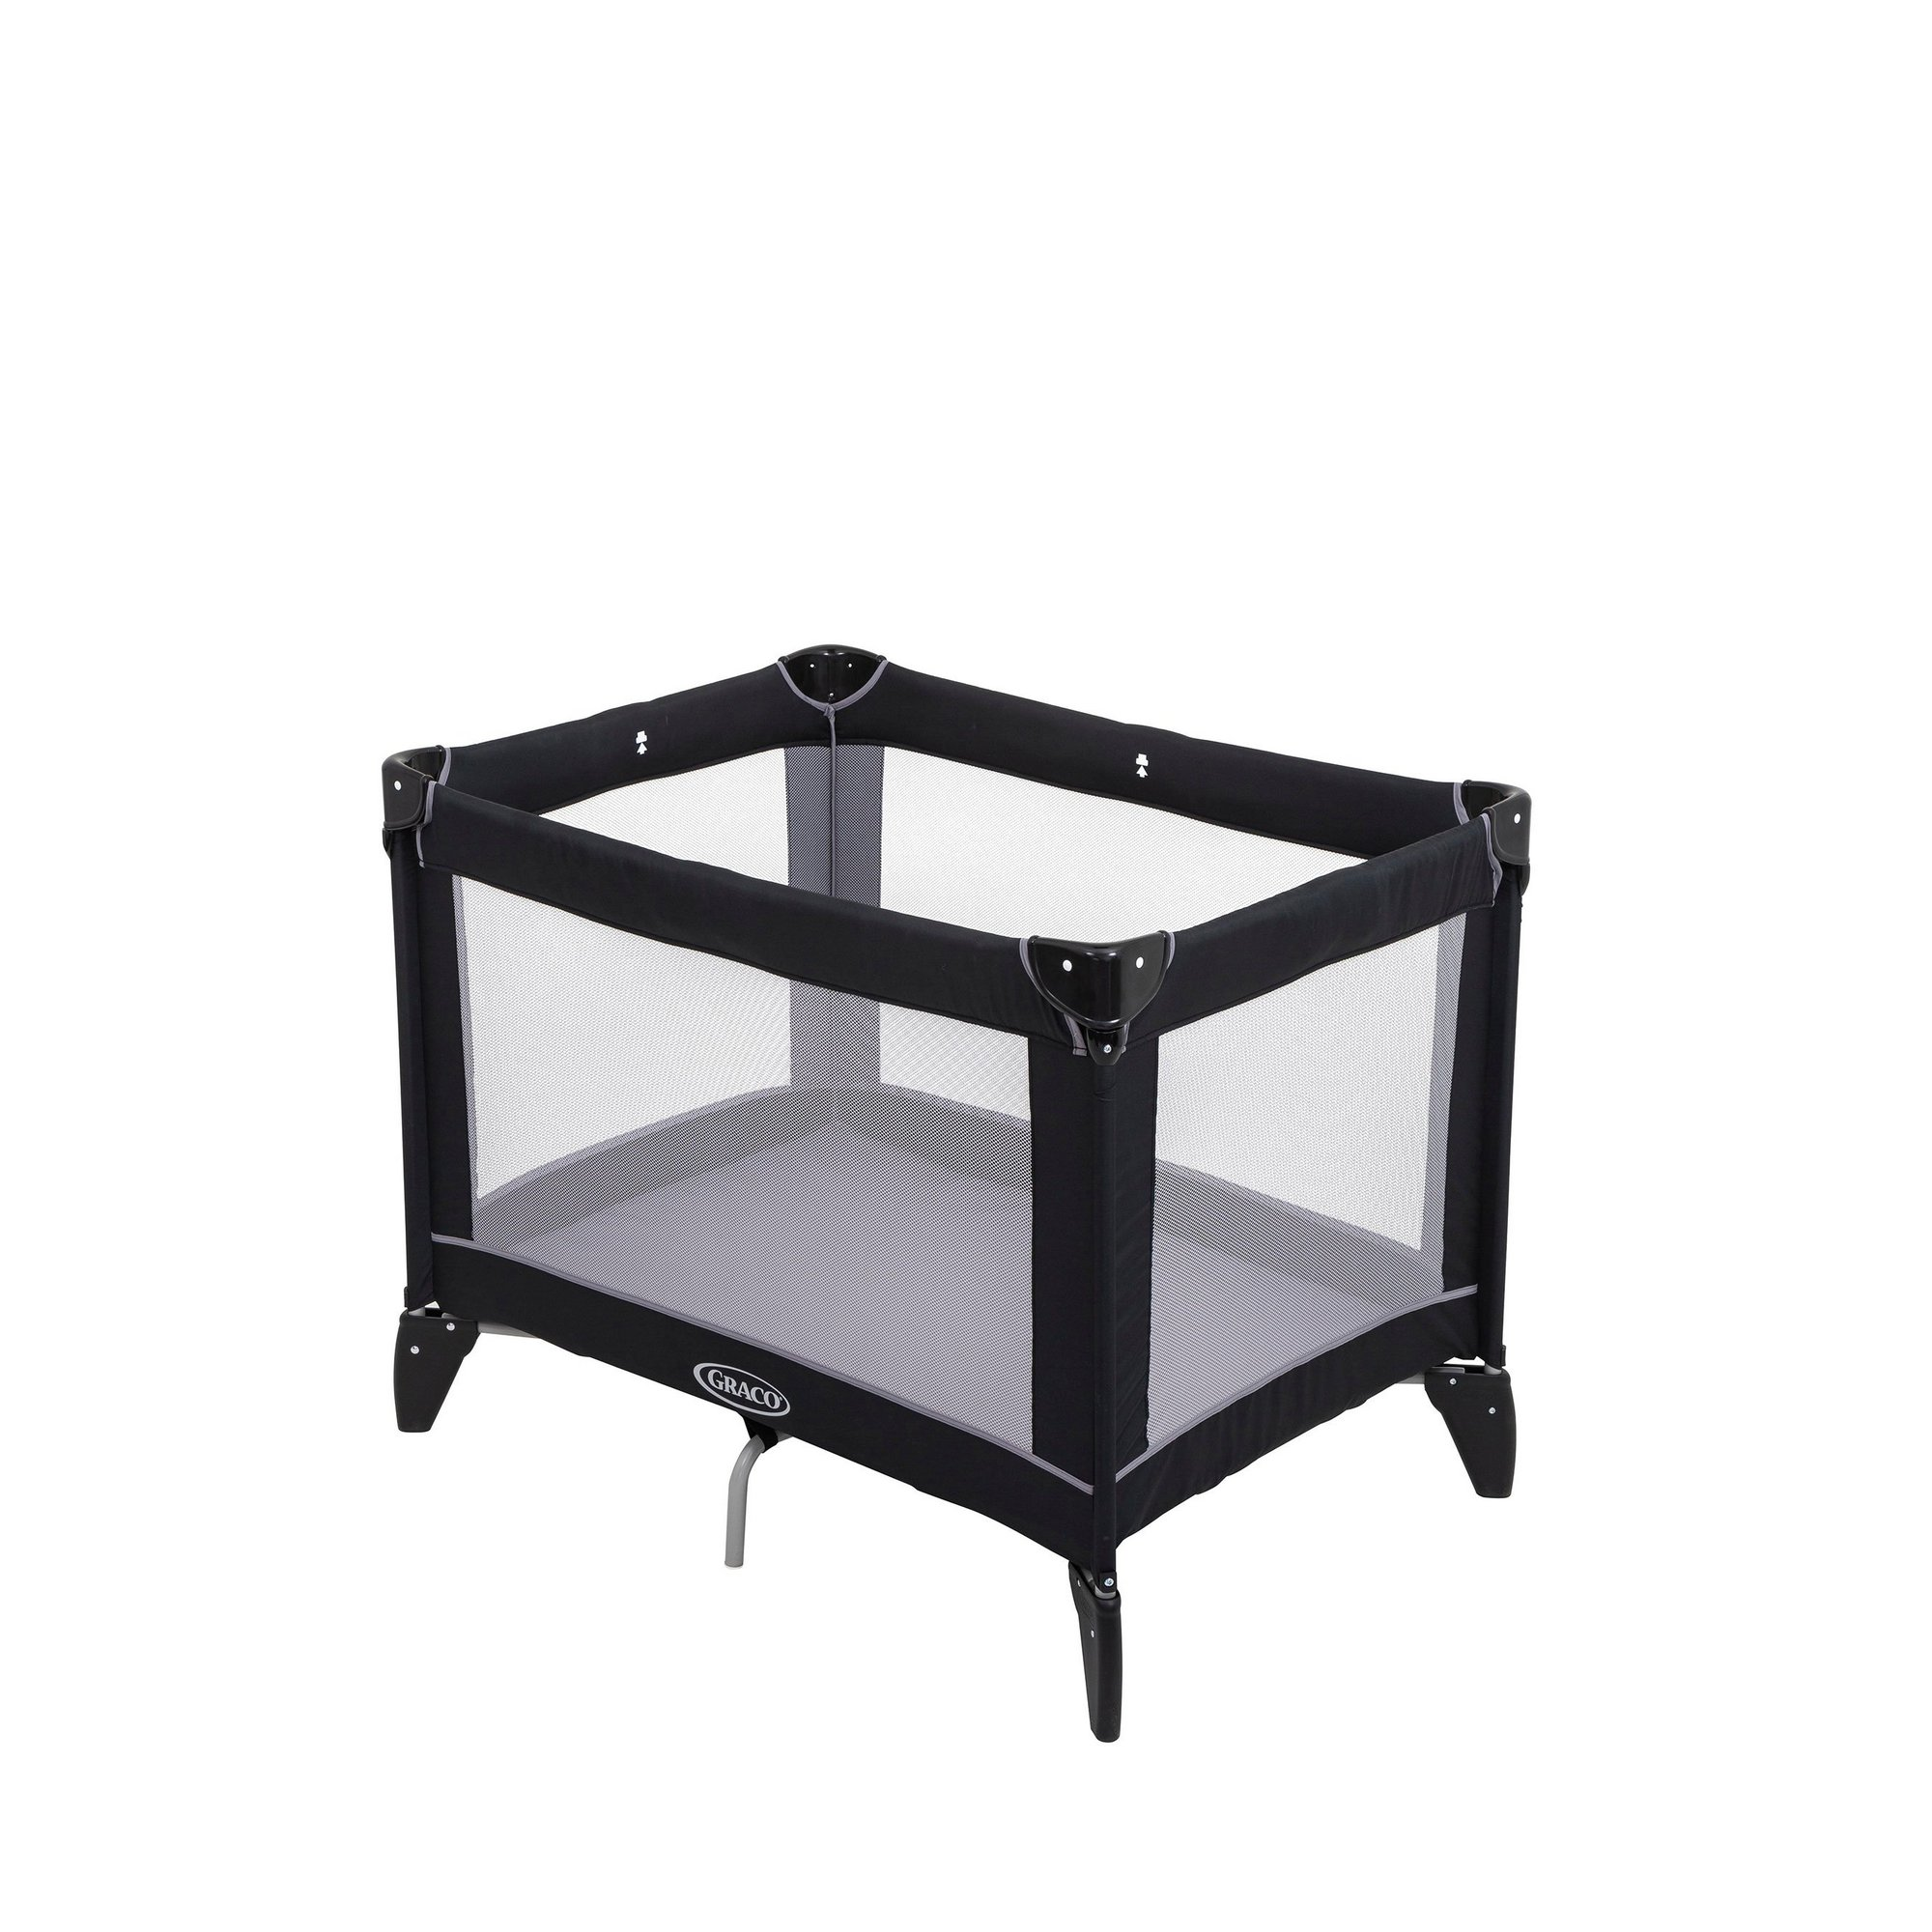 Image of Graco Compact Travel Cot - Black/Grey